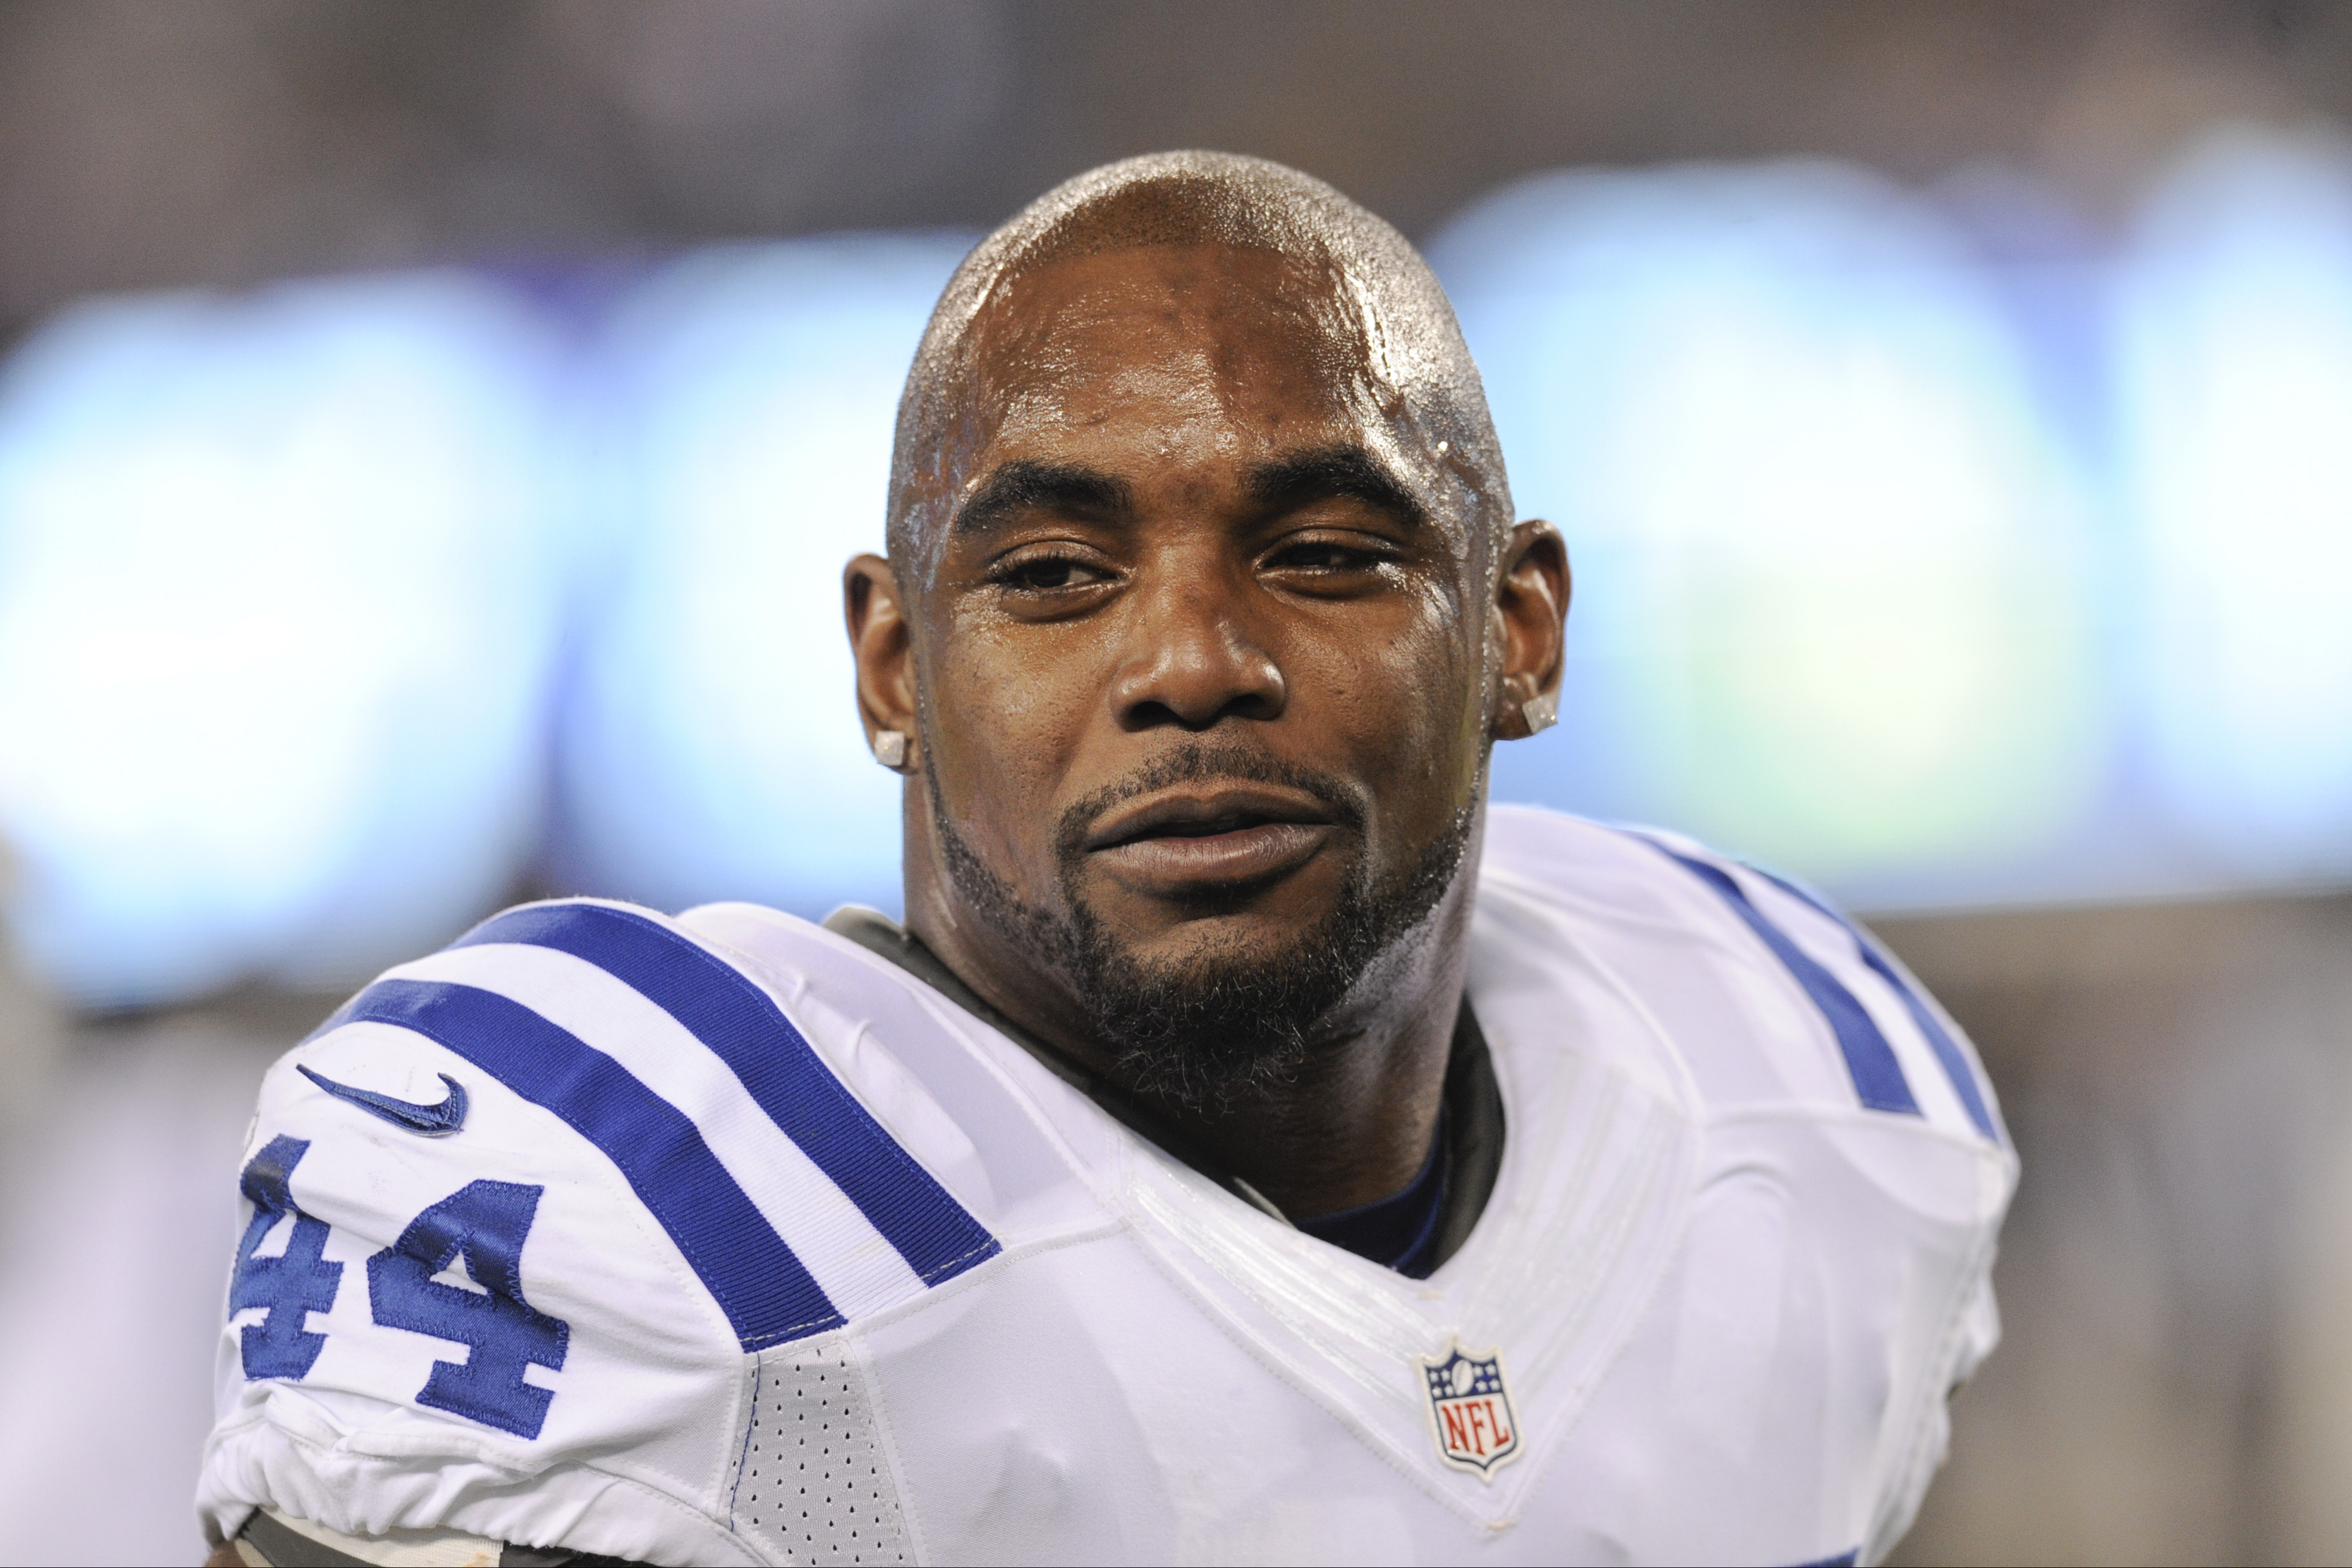 Police: Pot found, no other drugs in Ahmad Bradshaw's car